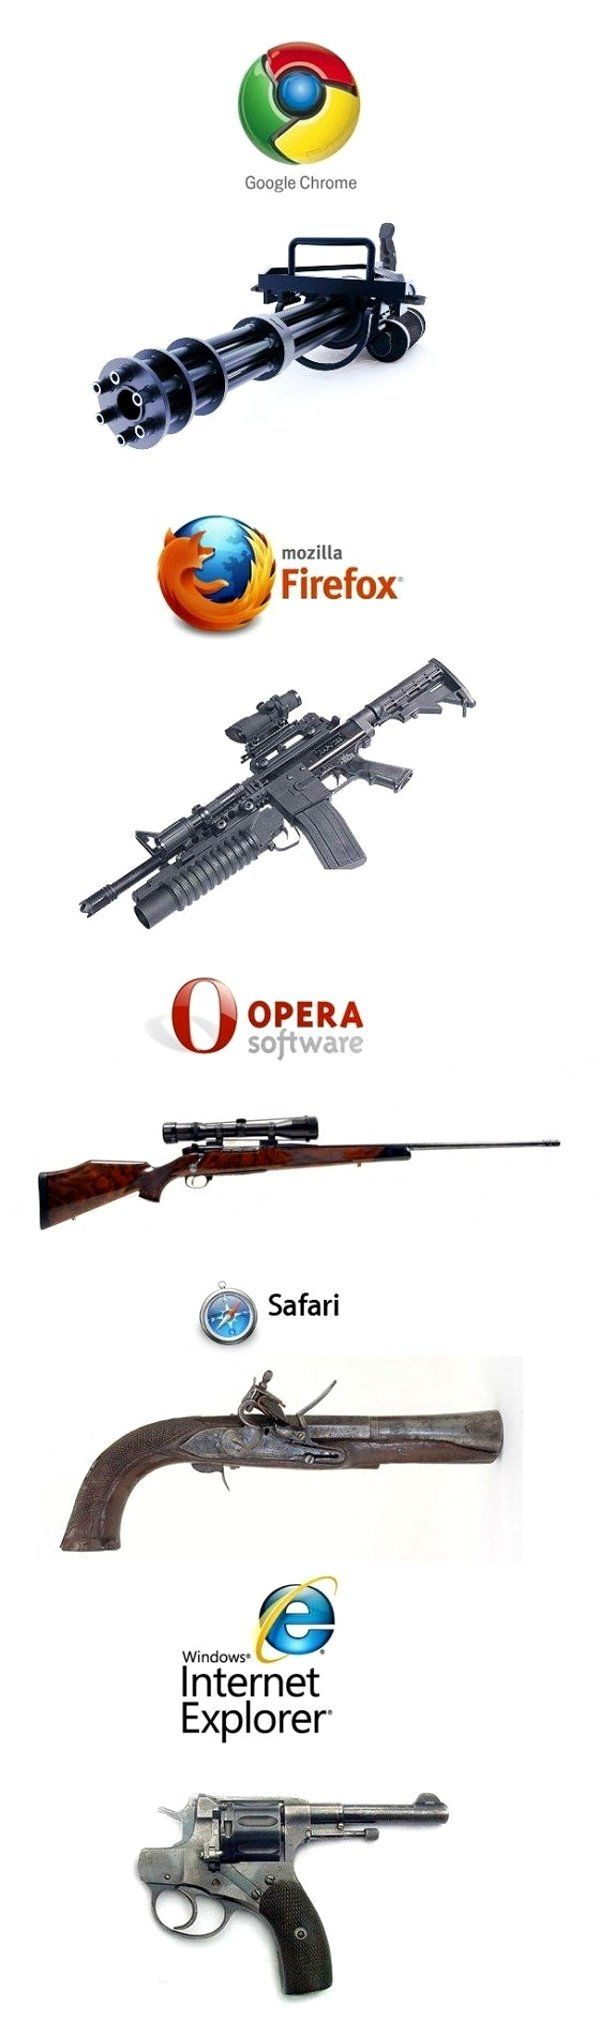 Browsers as guns.